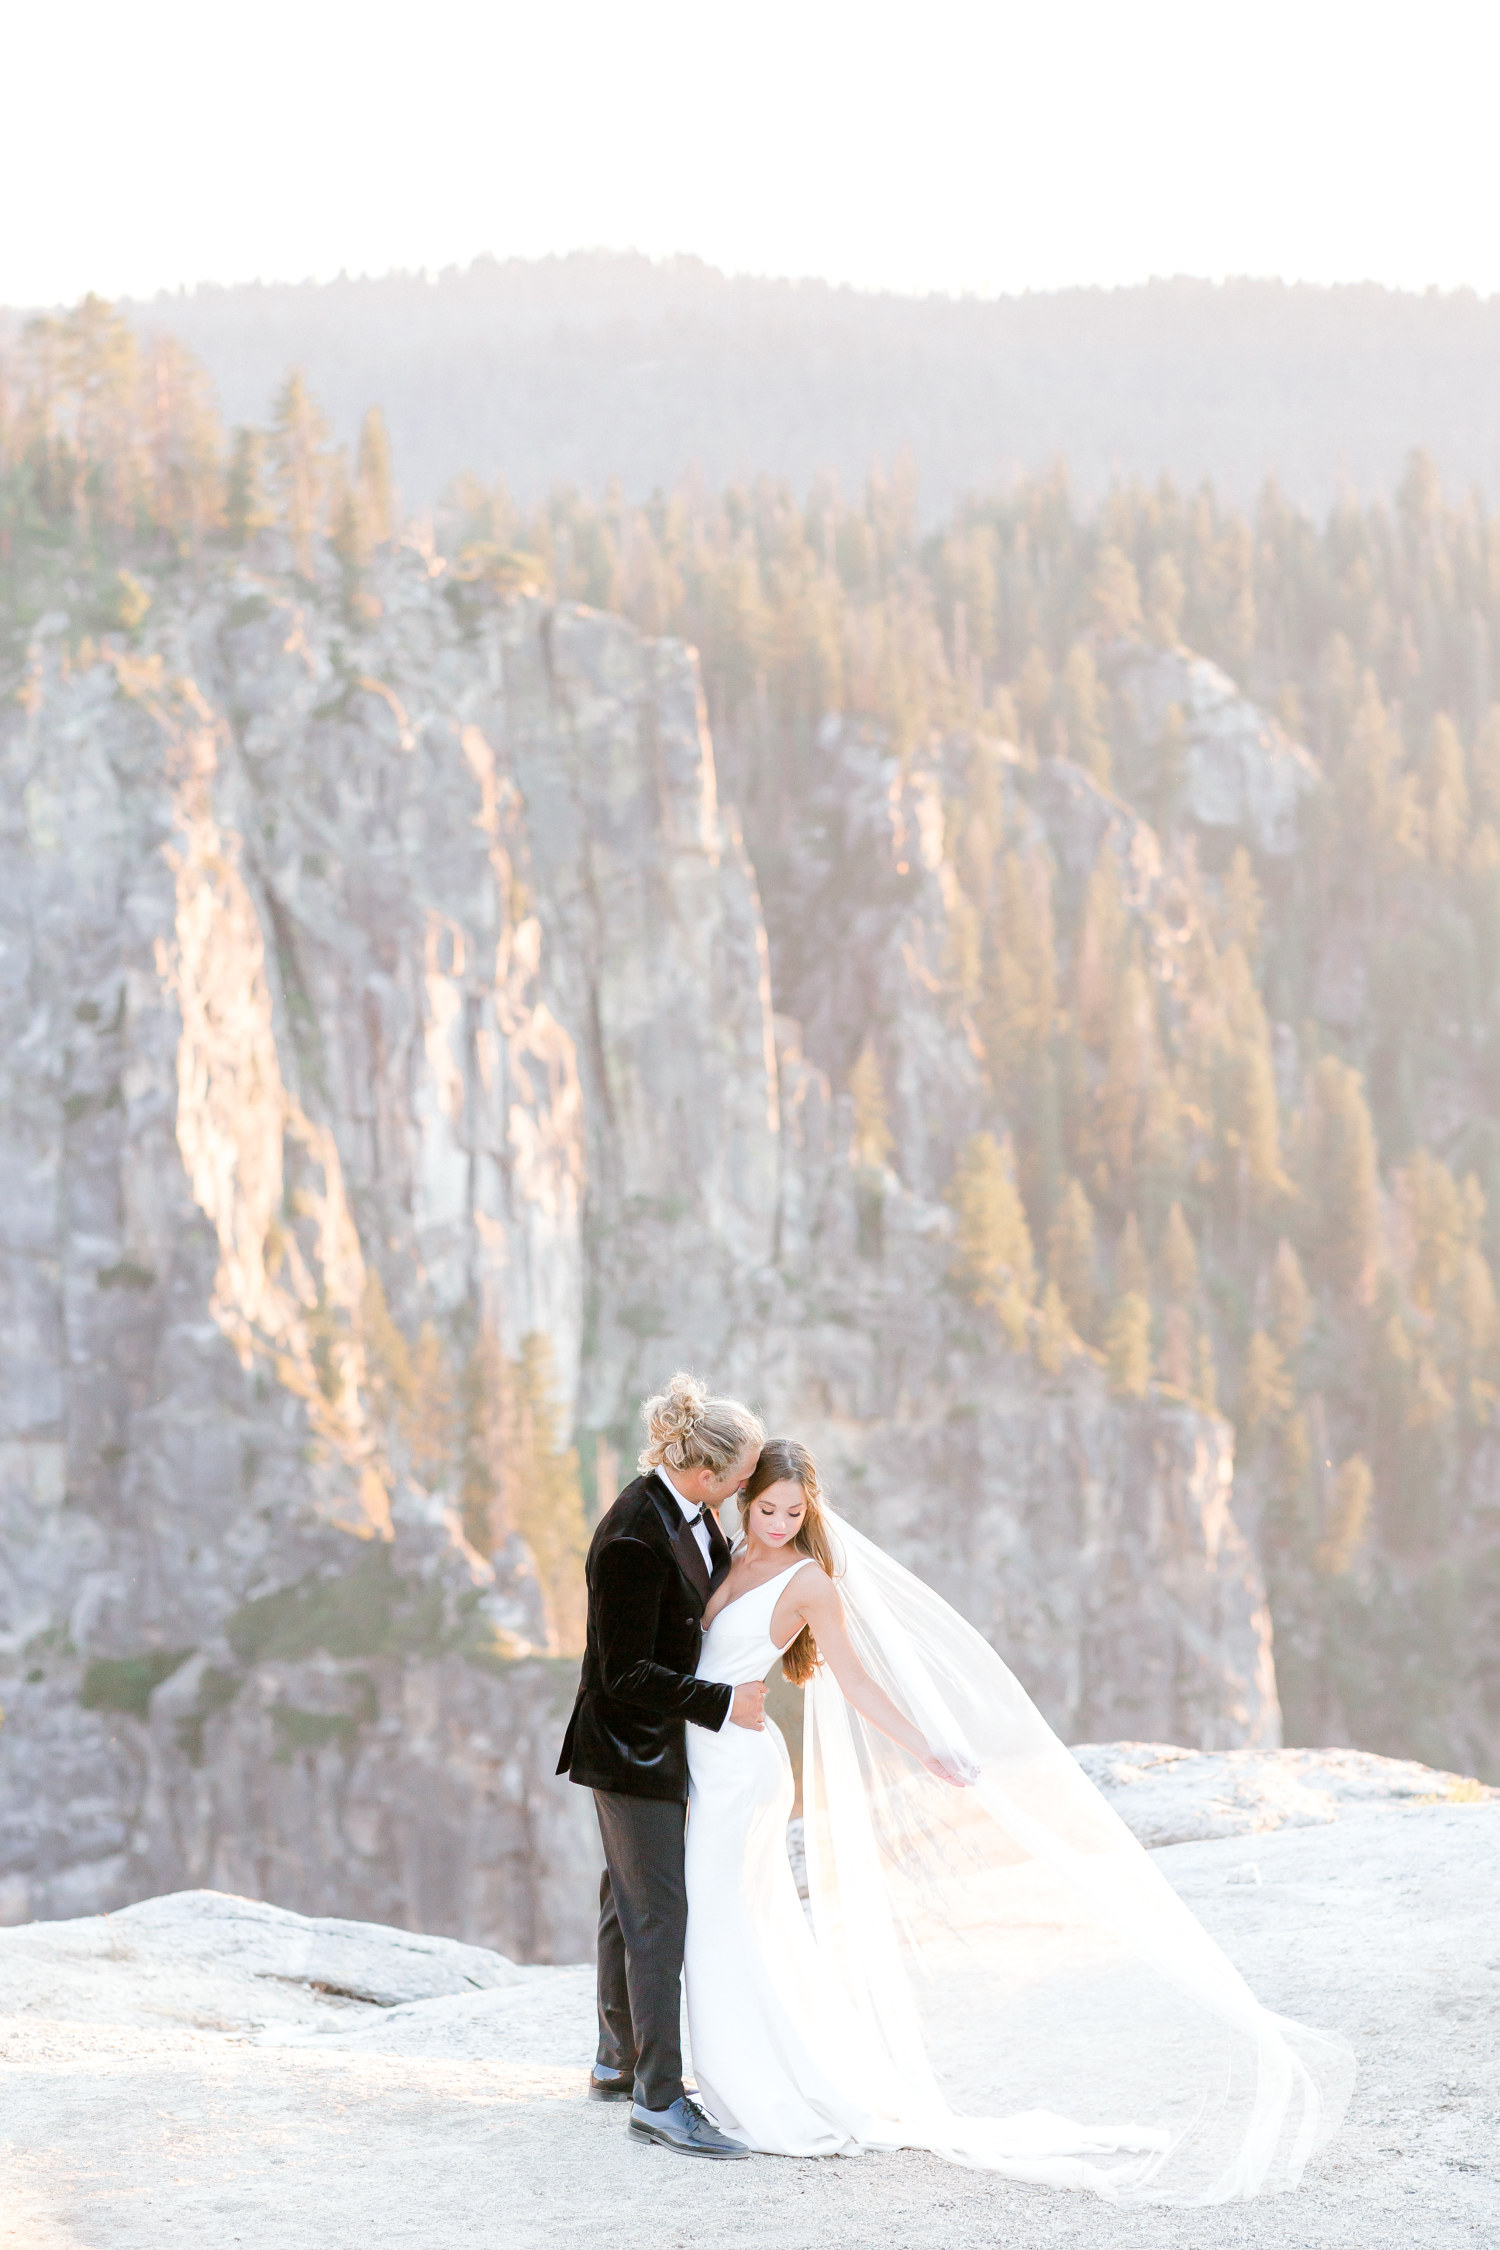 Hannah Way Photography - Dallas wedding photographer - luxury weddings - luxury wedding photographer - dfw wedding photographer - best wedding photographer - Dallas best wedding photographer - elopement - elopement wedding photographer - elopement Wedding - Yosemite - Yosemite elopement - Yosemite elopement photographer - destination wedding photographer - taft point - taft point Yosemite